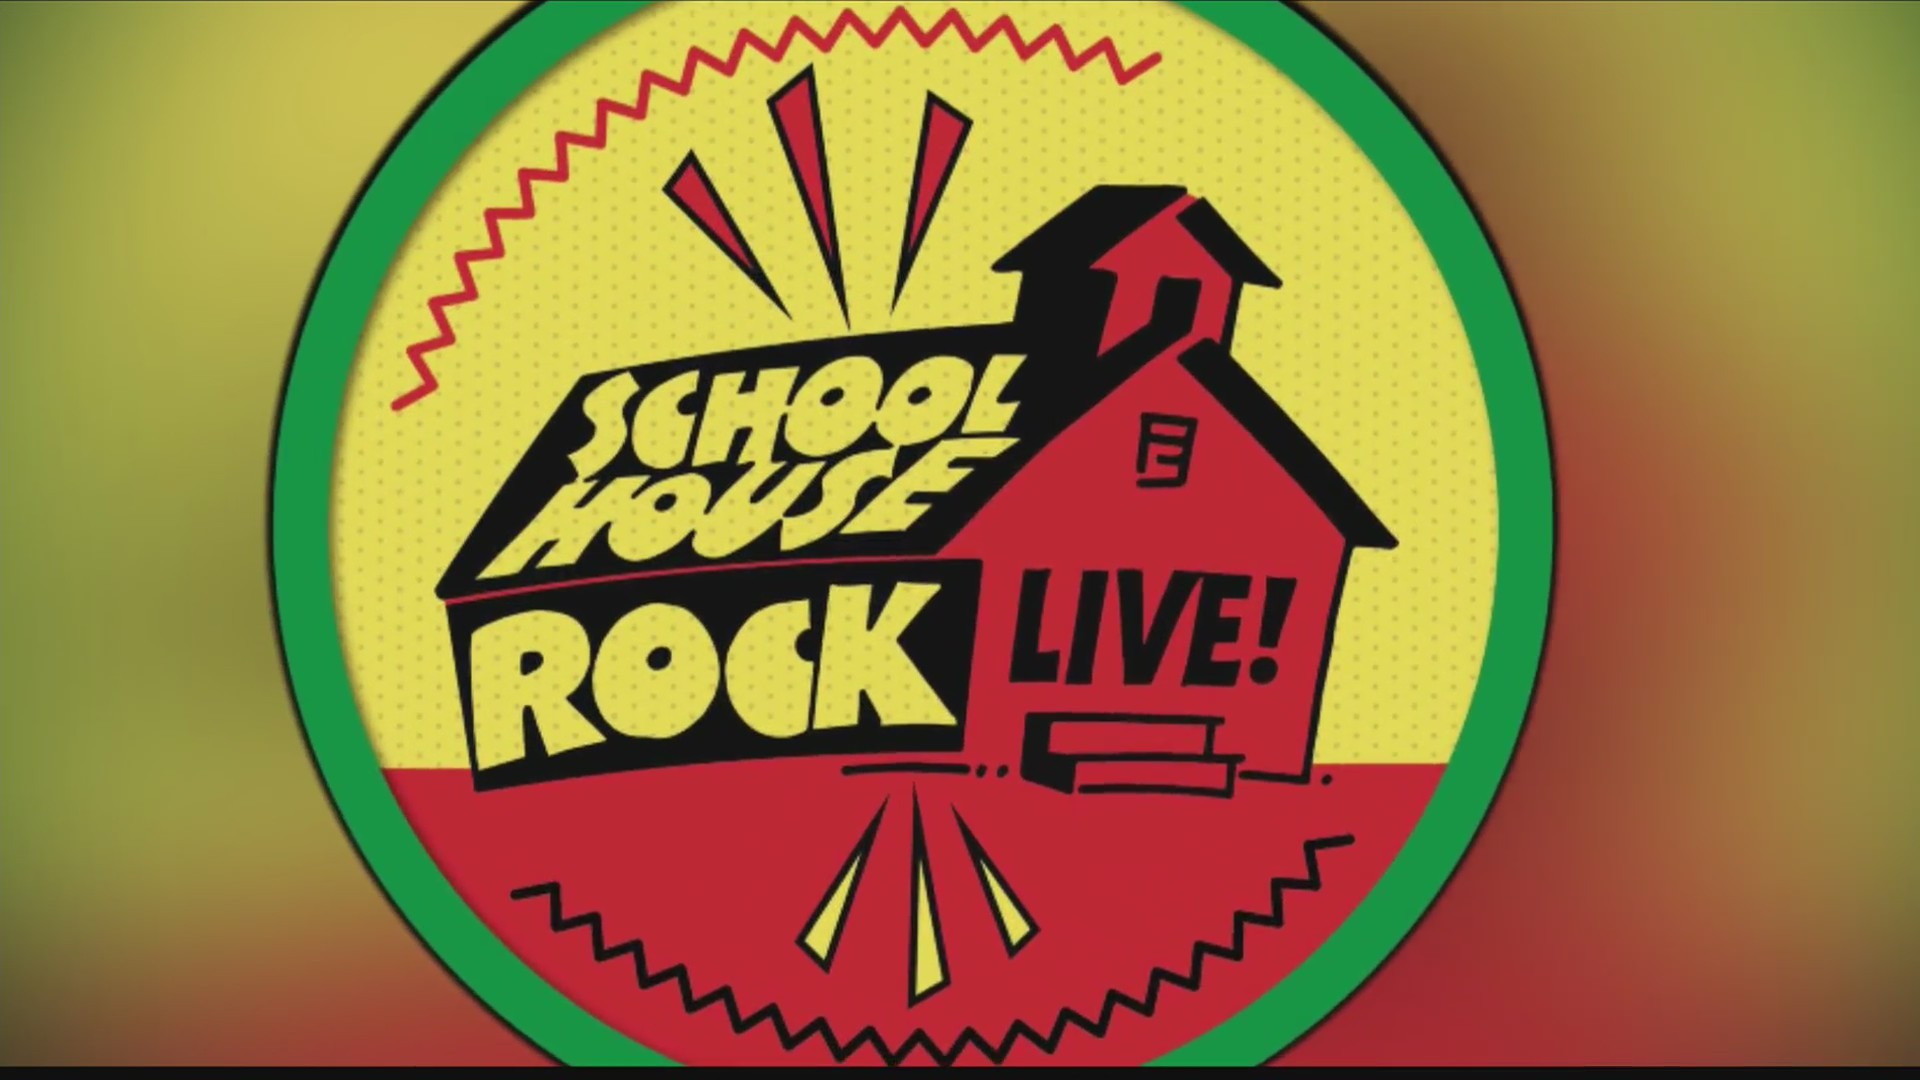 SchoolHouse_Rock_Live__is_at_the_Roanoke_0_20190503160854